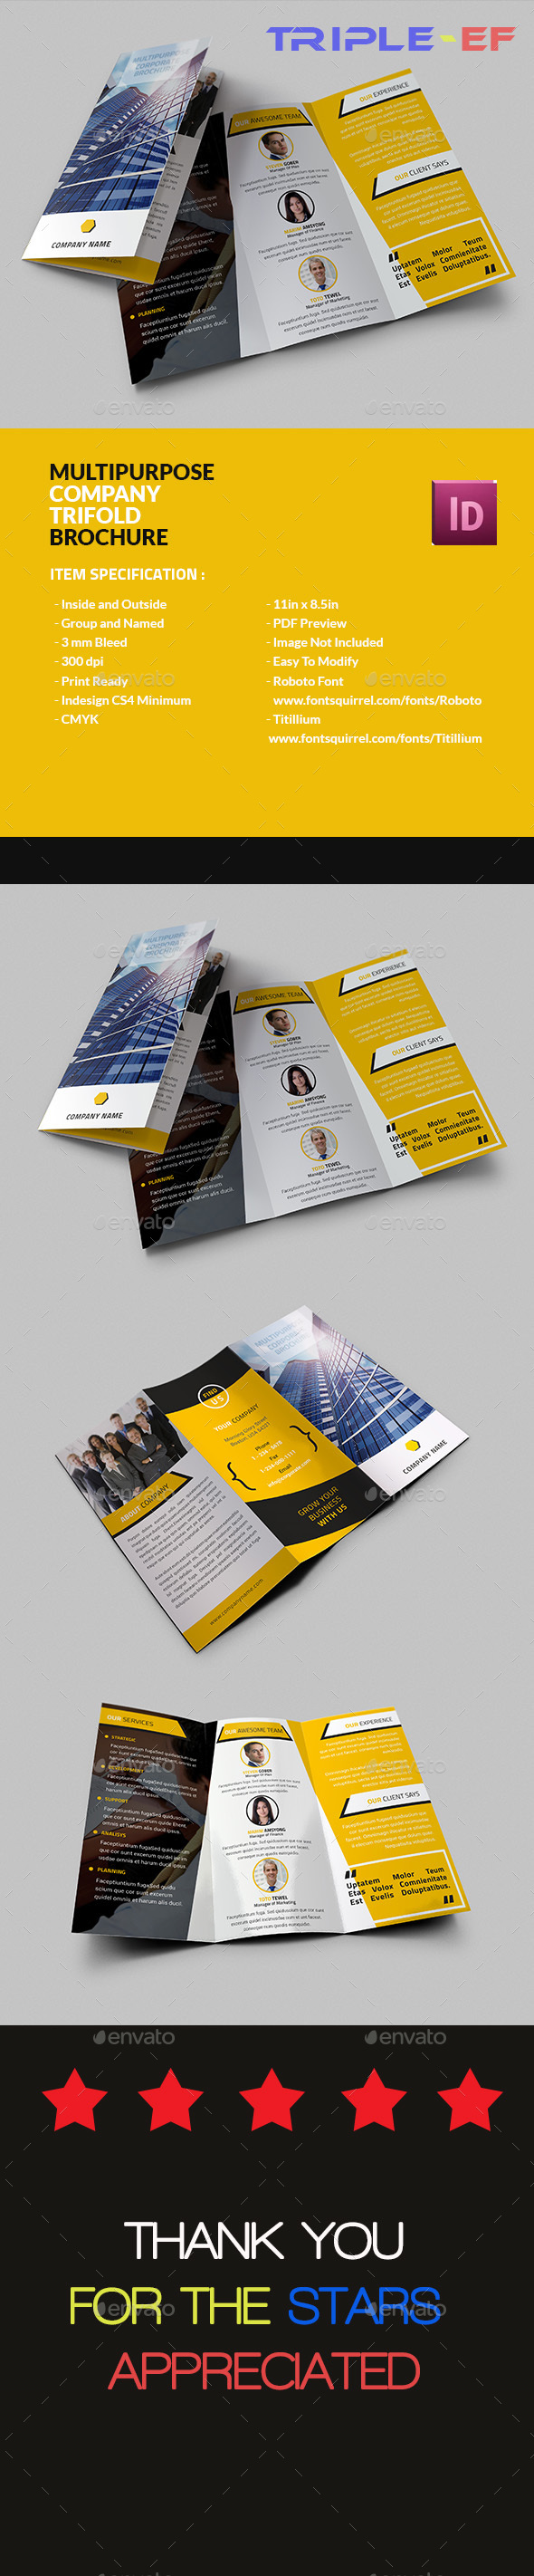 Multipurpose Company Brochure - Corporate Brochures